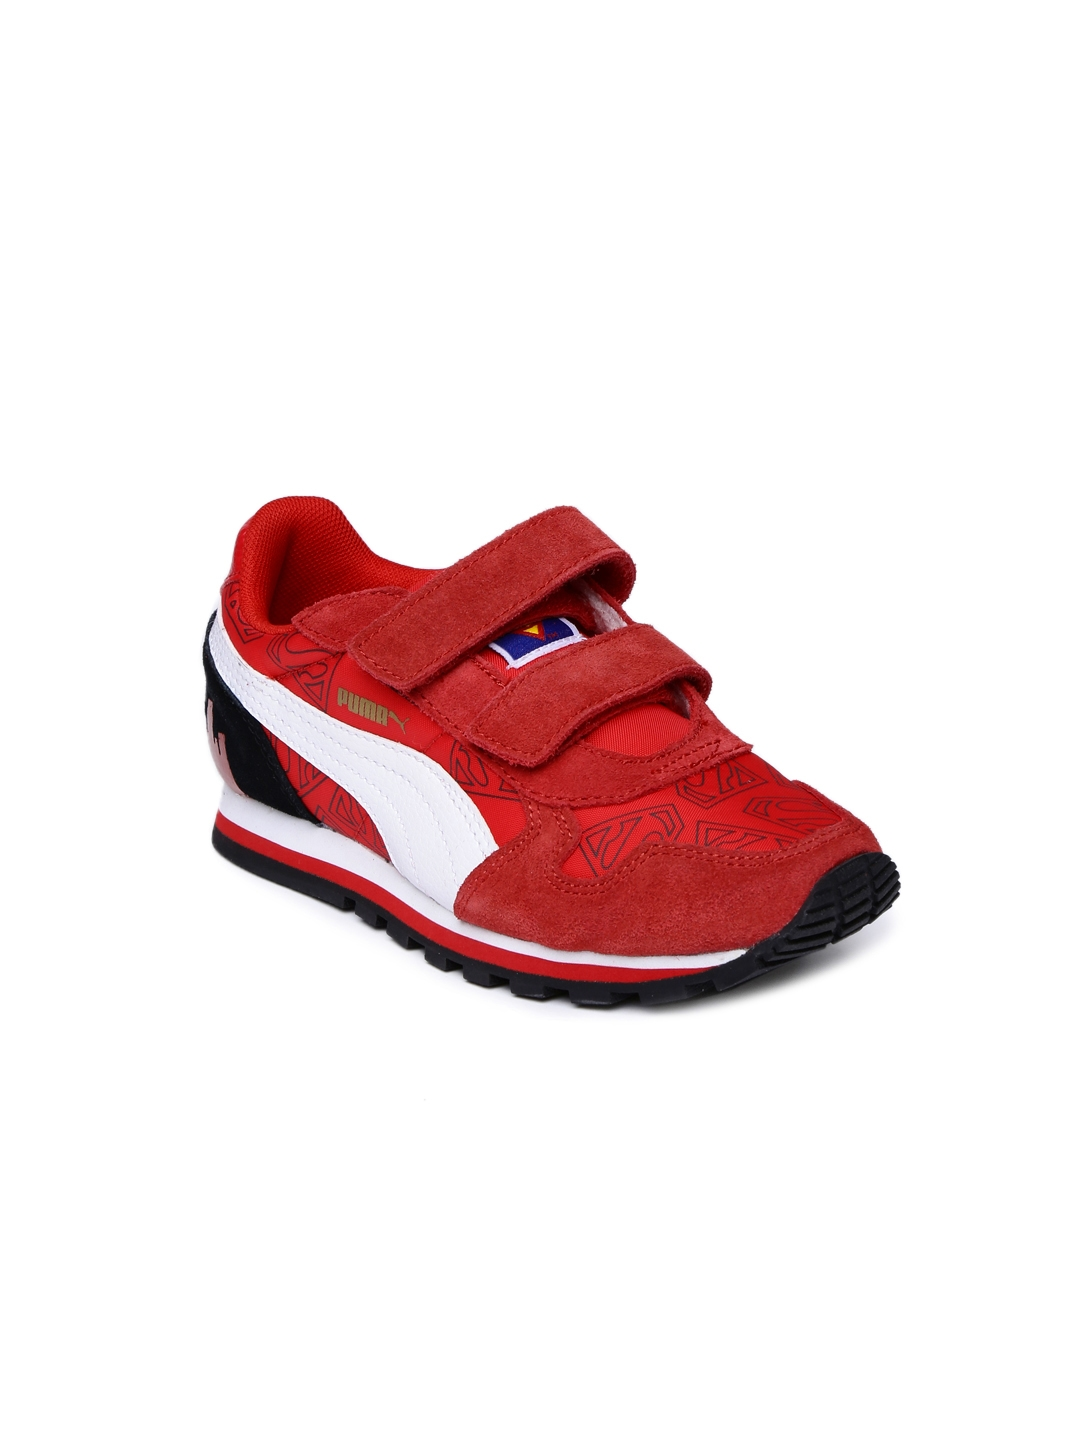 daaa8b4644633c Buy PUMA Kids Red Superman Print Running Shoes - Sports Shoes for ...